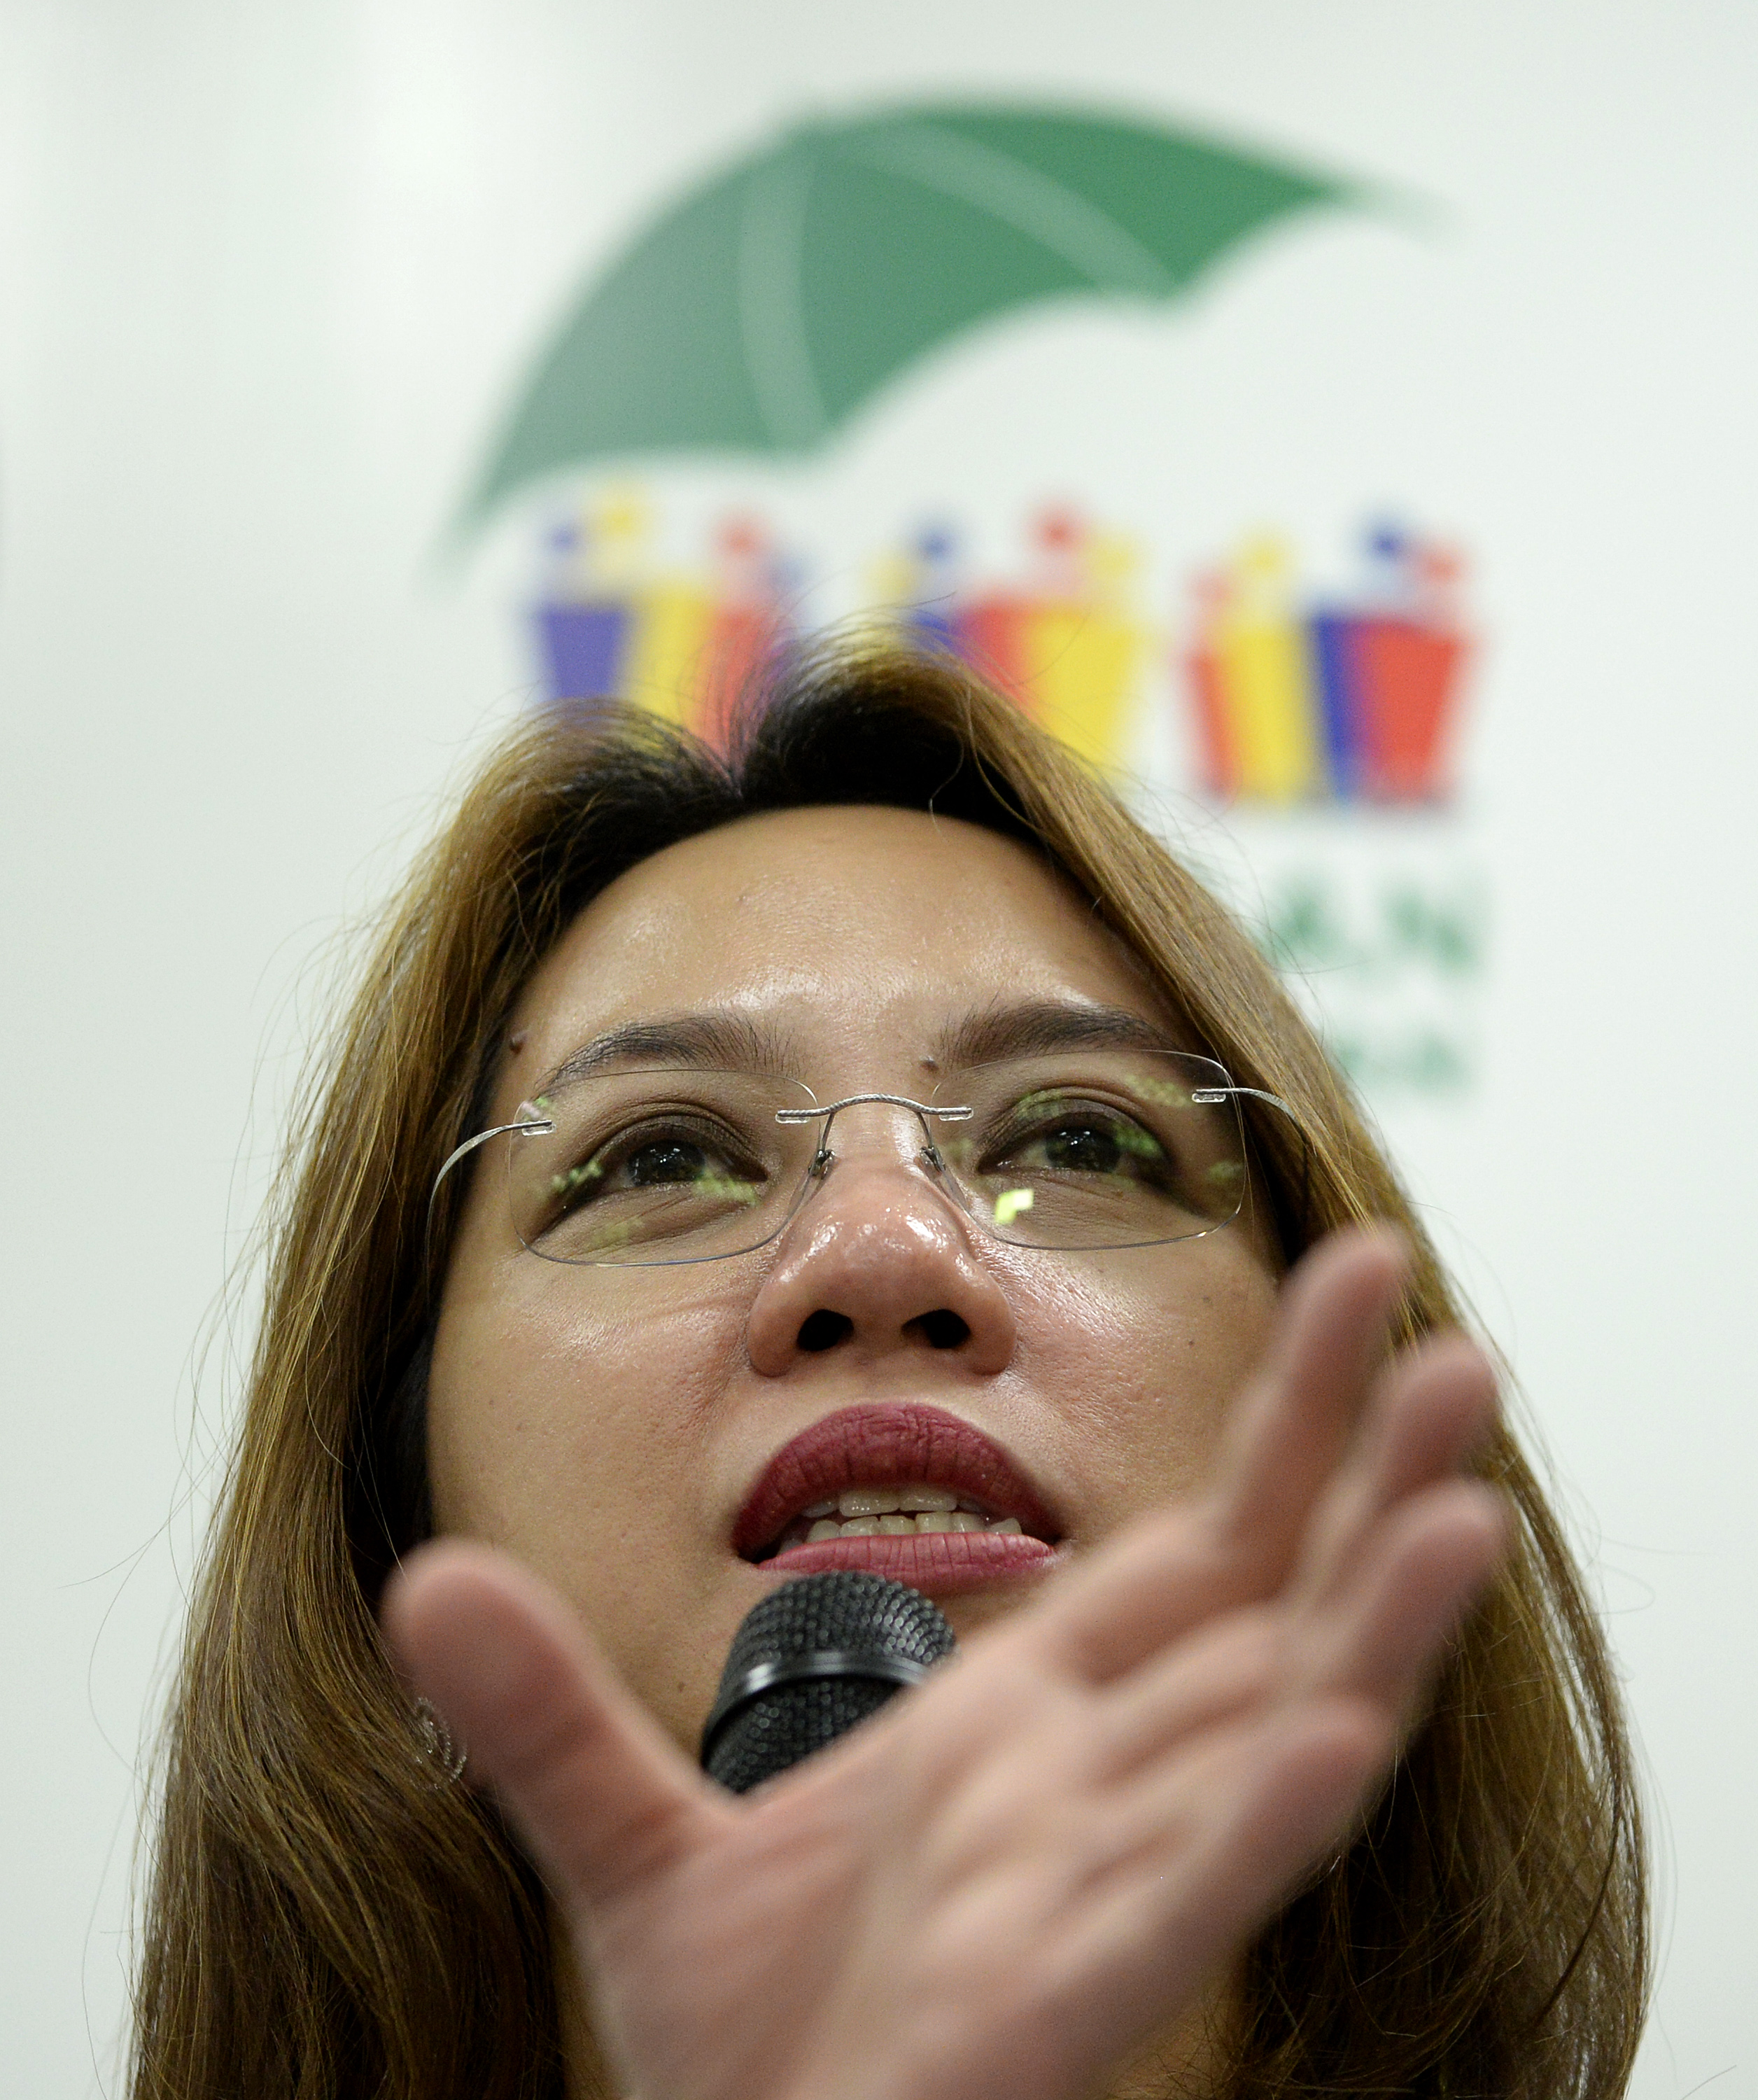 Department of Health (DOH) secretary Janette Garin gestures during a press conference on the Zika Virus at the DOH headquarters in Manila on March 14, 2016.  The DOH announced that it will strengthen its monitoring against the Zika Virus and called all pregnant women to be more careful against mosquito bites during the day. / AFP / NOEL CELIS